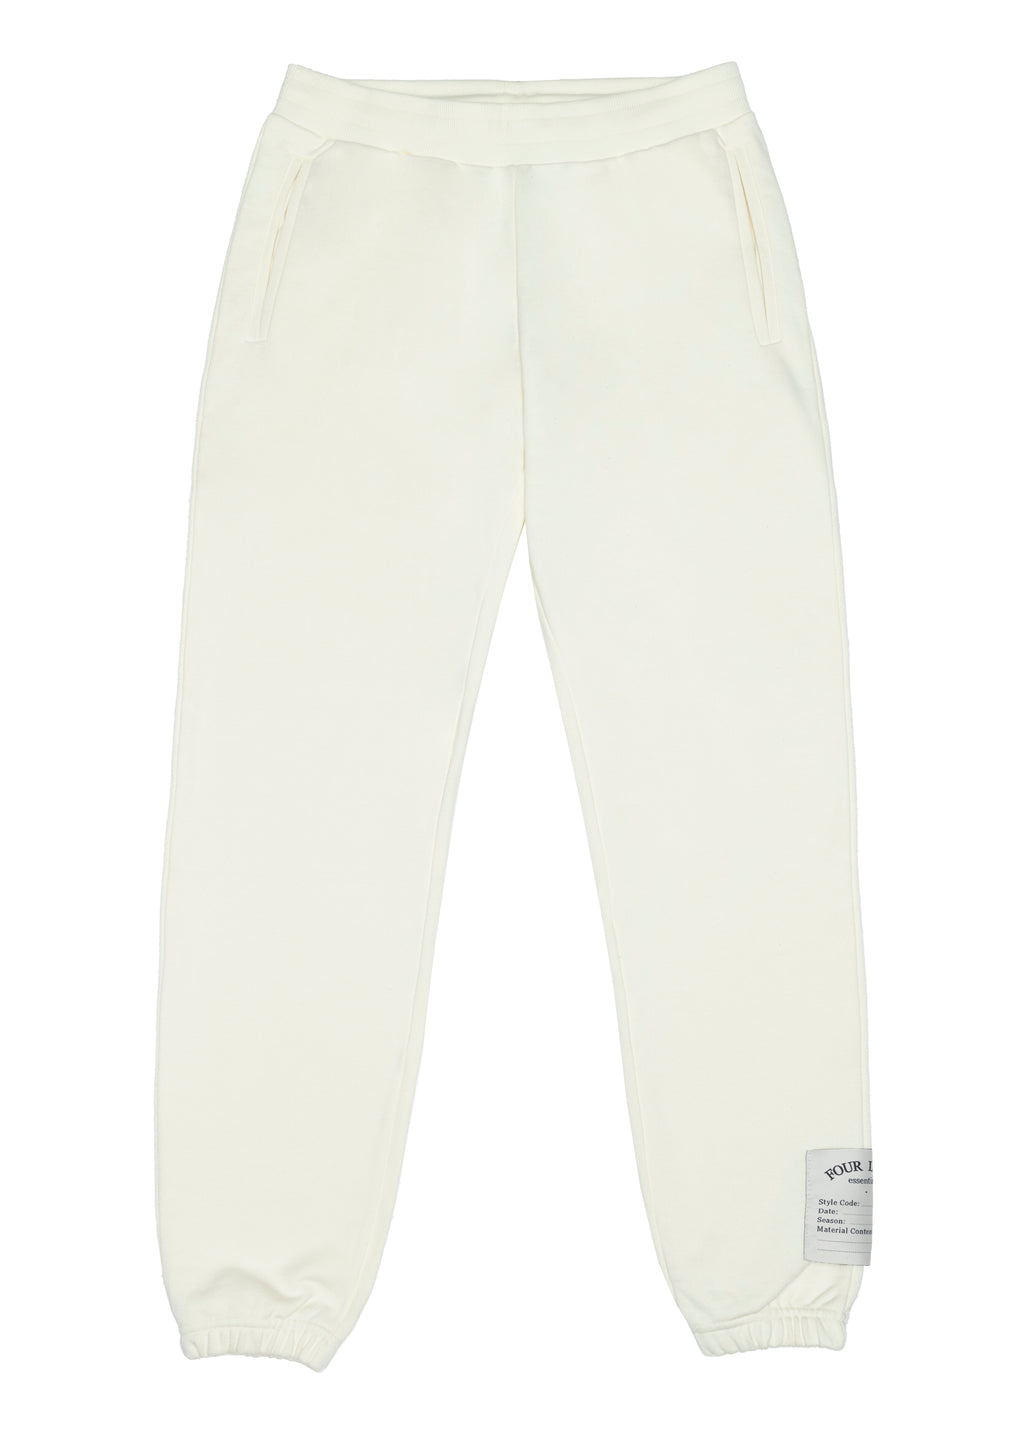 THE CALLAN JOGGERS CREAM MENS